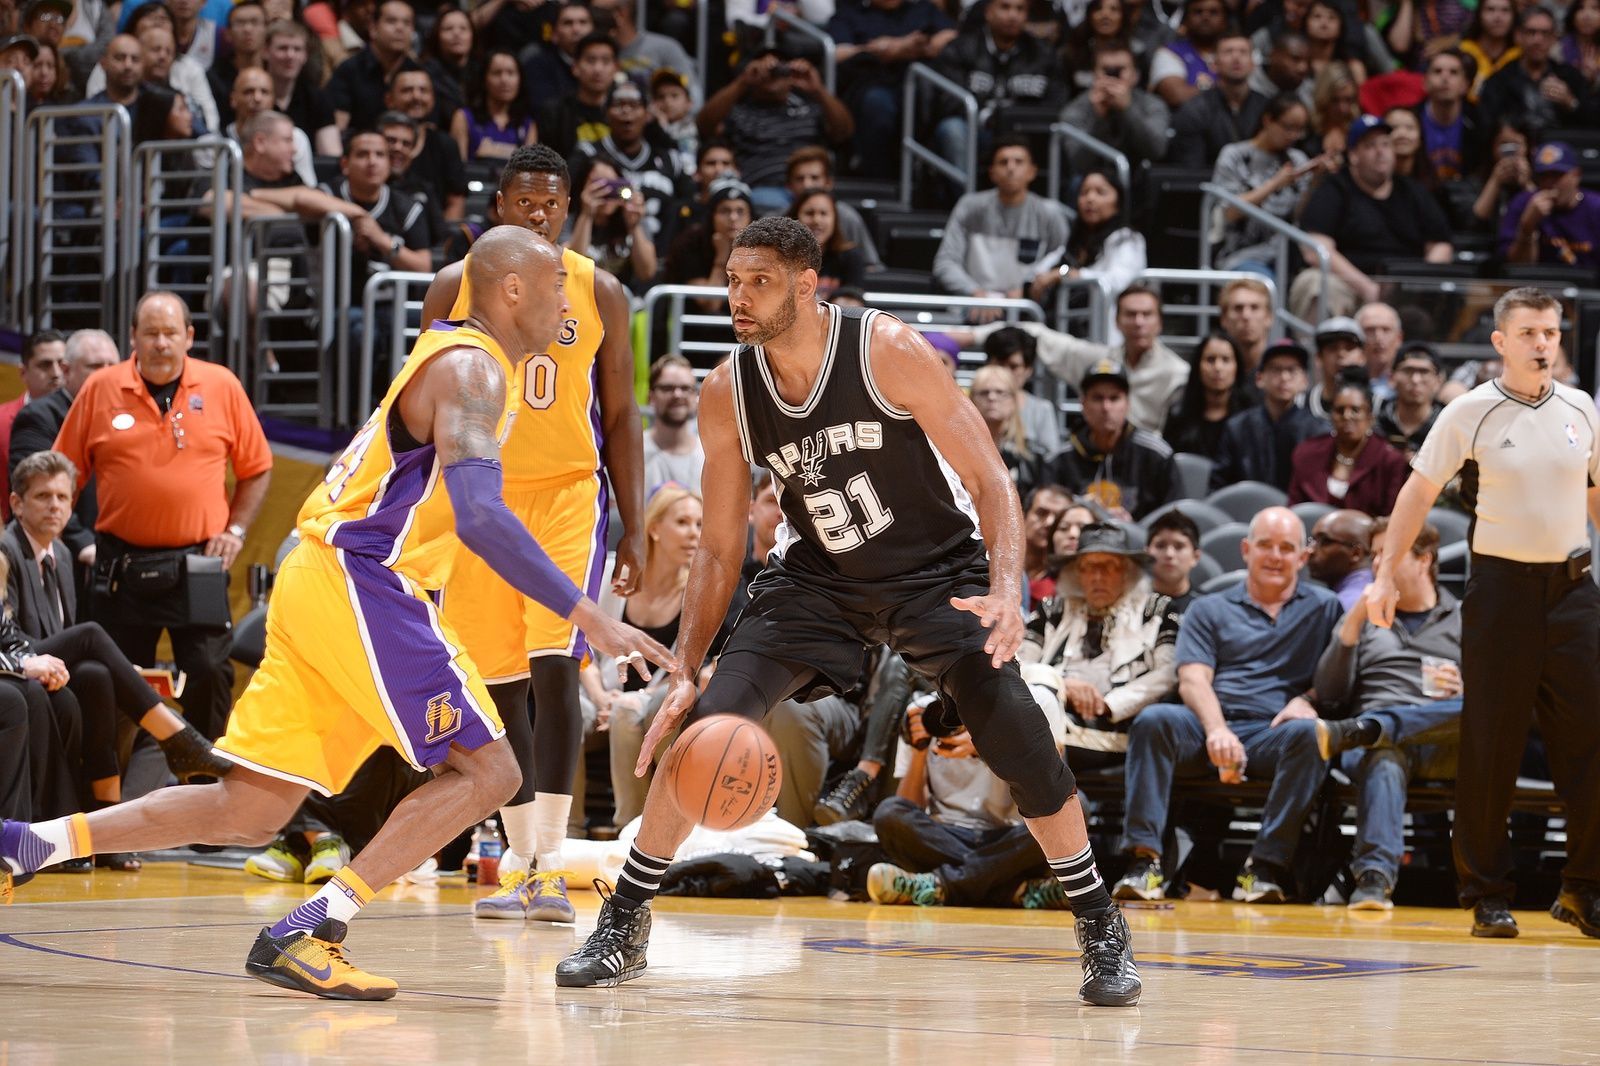 Kobe Bryant #24 of the Los Angeles Lakers handles the ball against Tim Duncan #21 of the San Antonio Spurs on February 19, 2016 at STAPLES Center in Los Angeles, California.